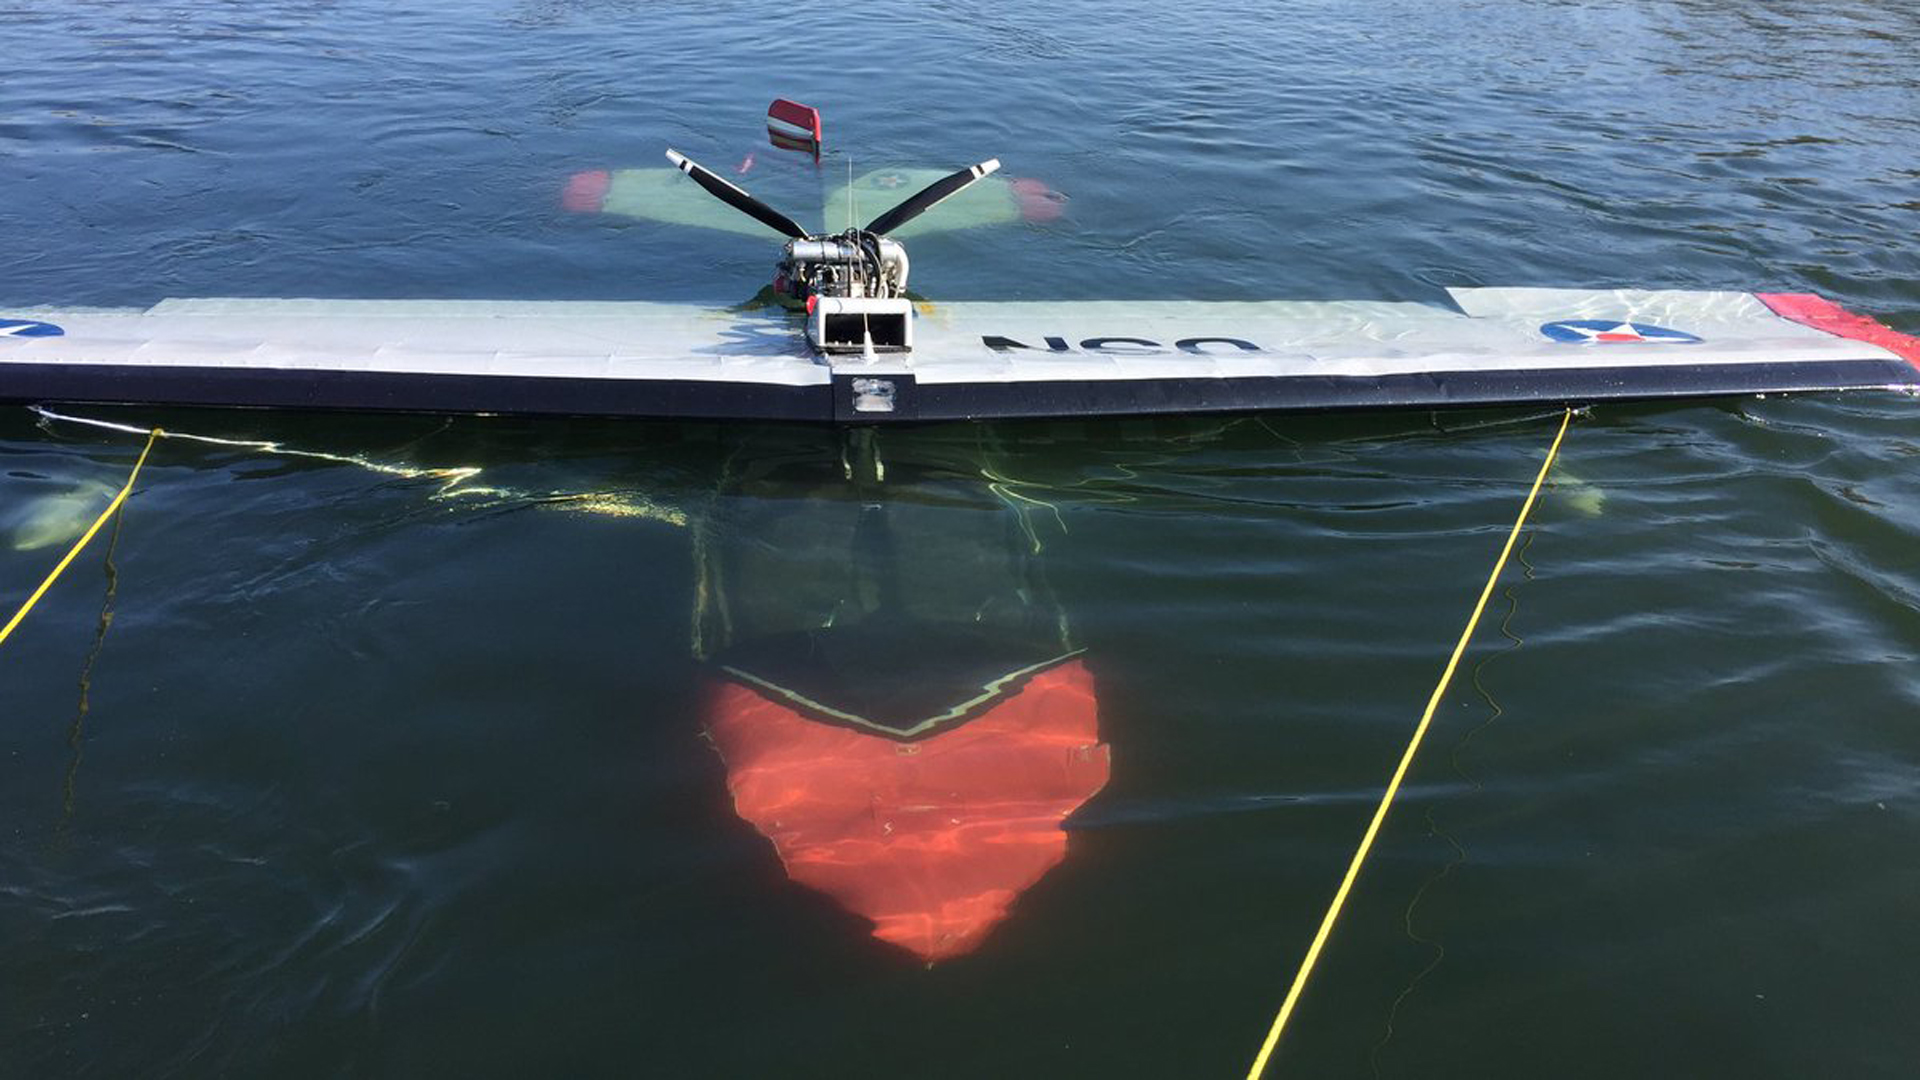 The Sacramento Fire Department released this photo of the submerged aircraft.